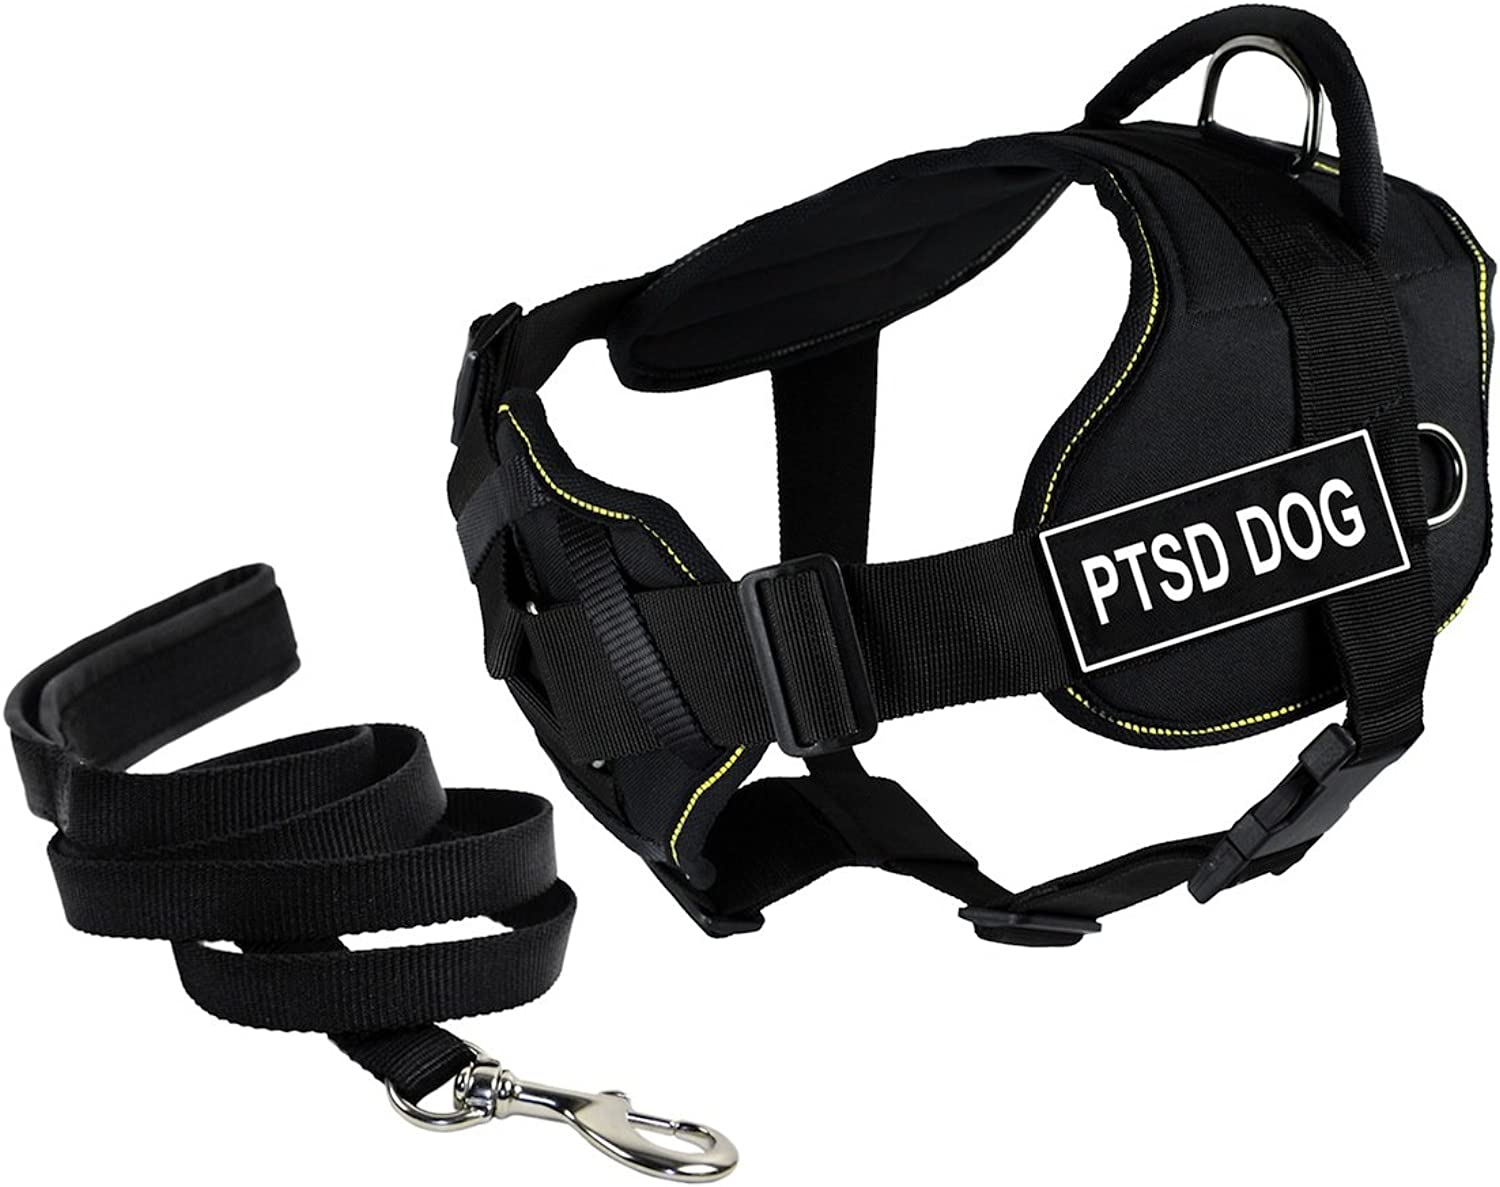 Dean & Tyler's DT Fun Chest Padding PTSD DOG Harness, Small, with 6 ft Padded Puppy Leash.